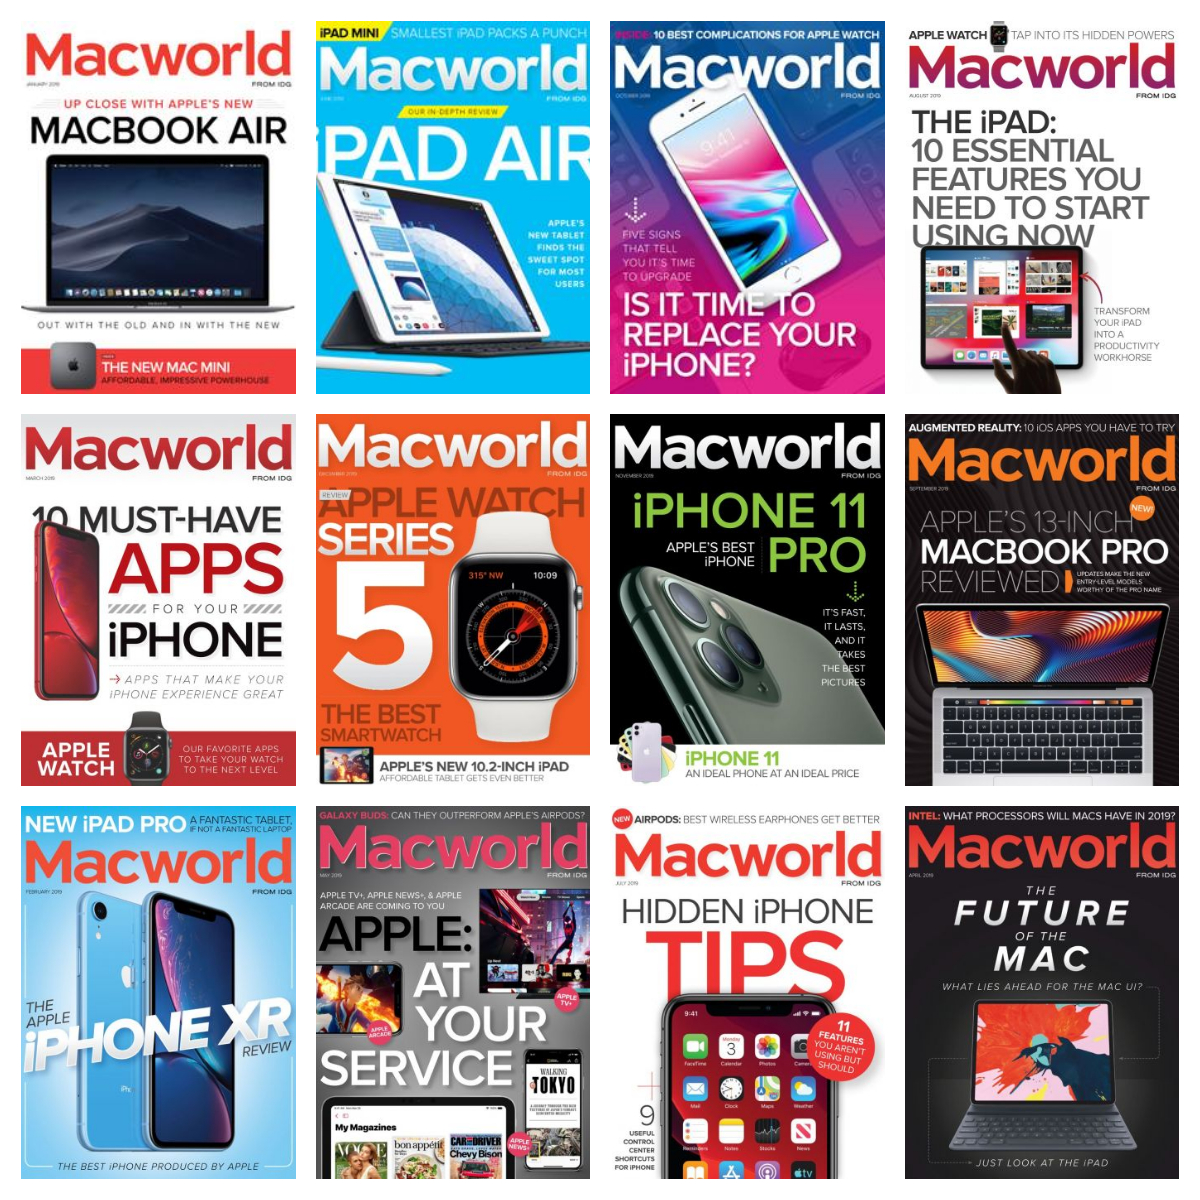 Macworld USA – 2019 Full Year Issues Collection